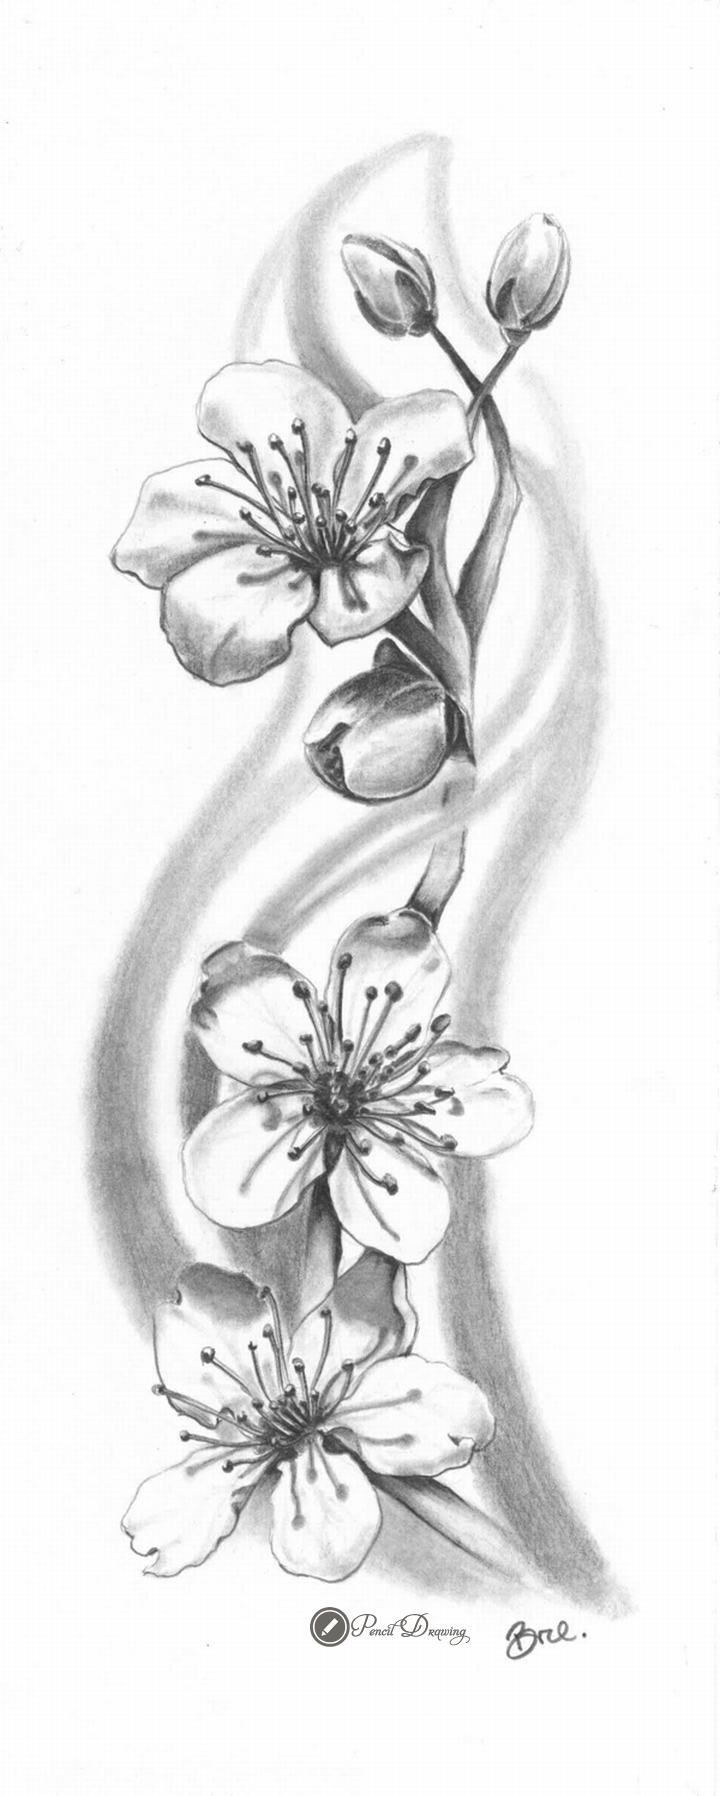 Cherry blossom sakura drawings with pencil part2 tattoos